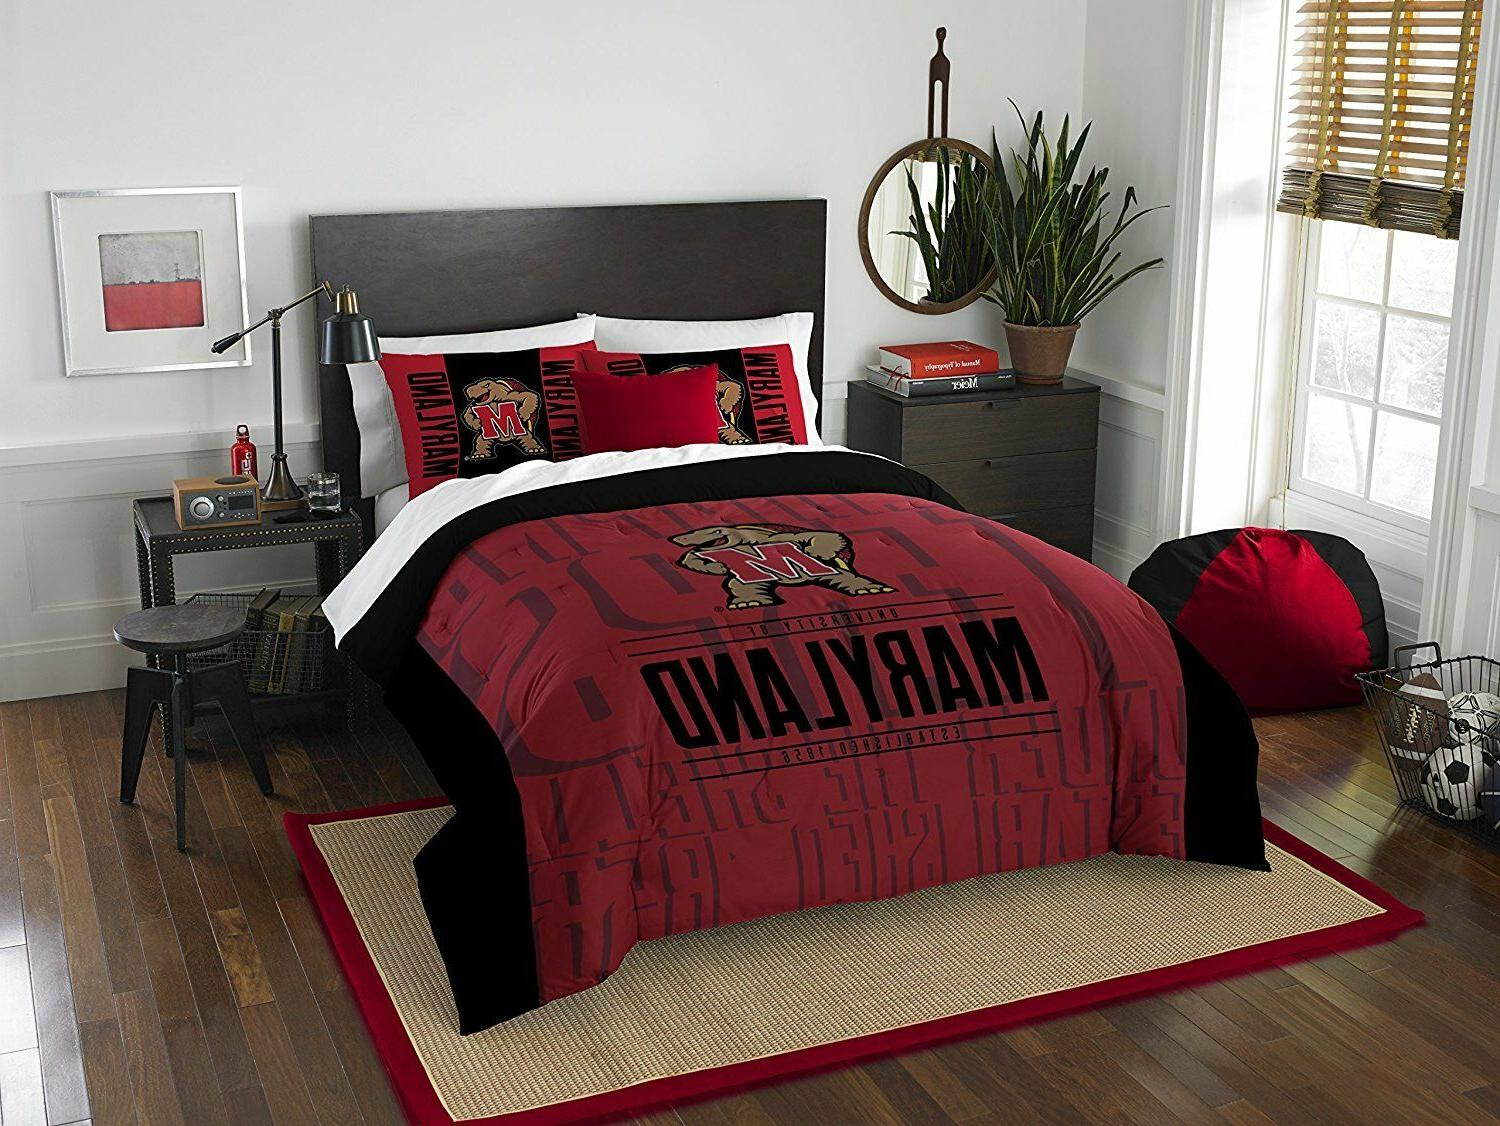 maryland terrapins bedding full queen comforter set